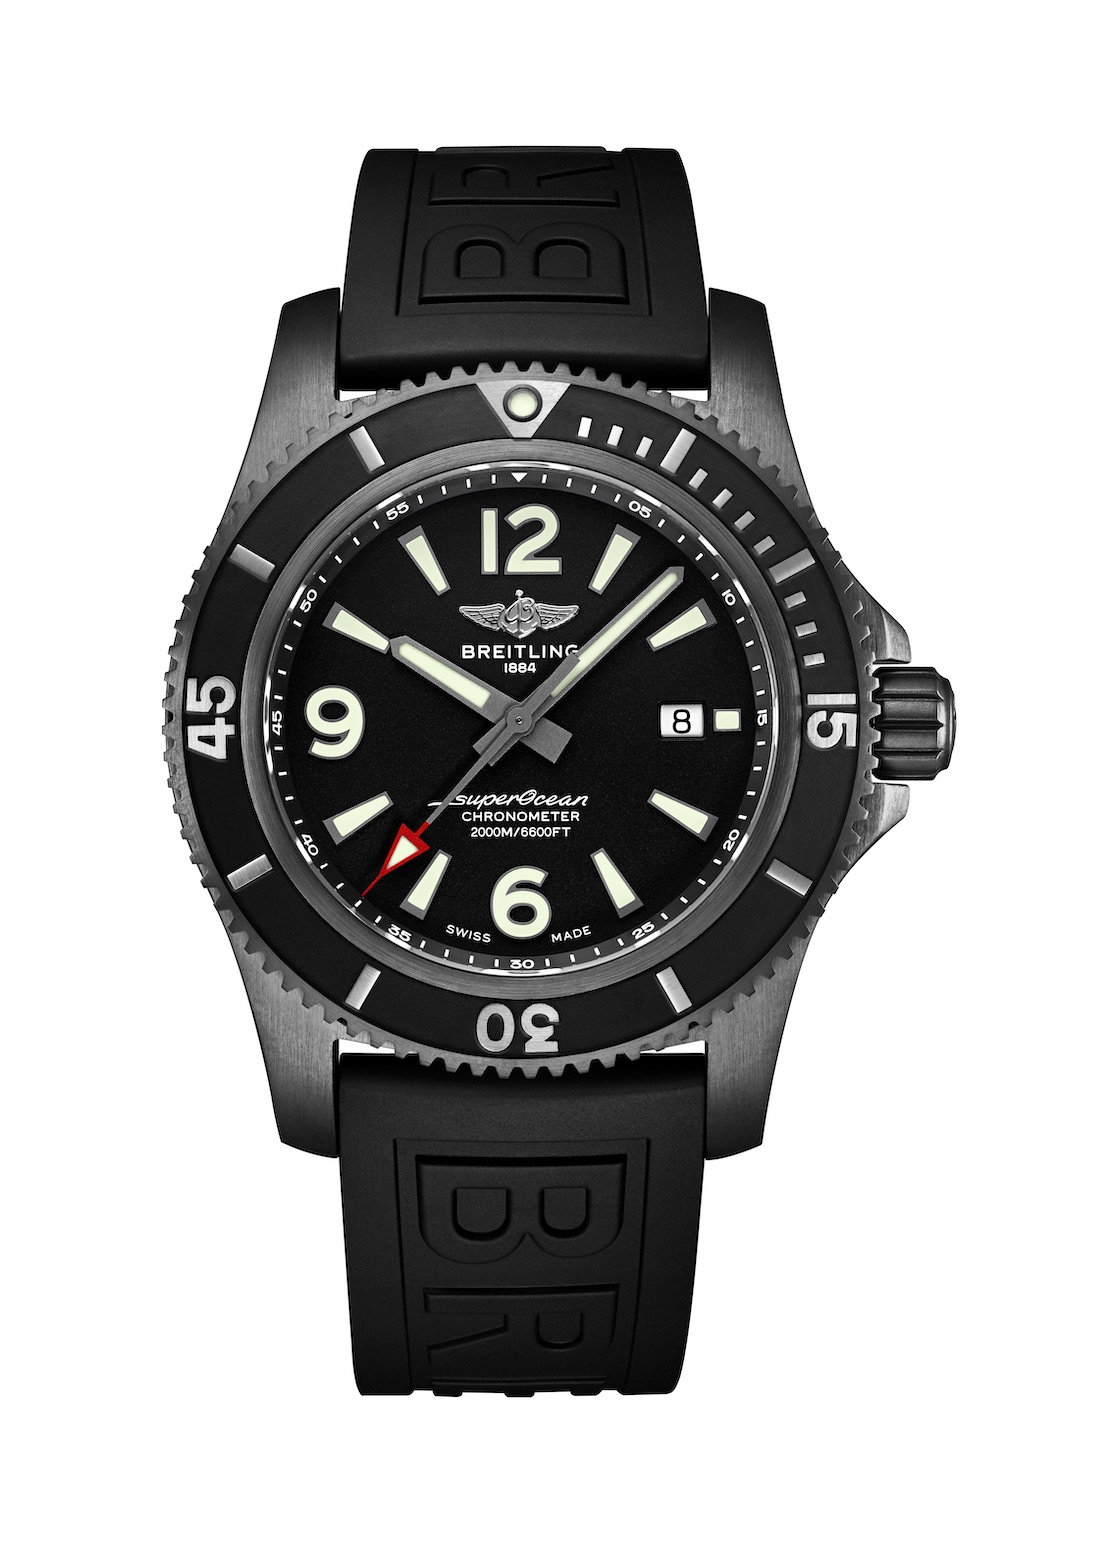 05_Superocean 46 in black steel with black dial and black Diver Pro III rubber strap_22865_19-03-19.jpg